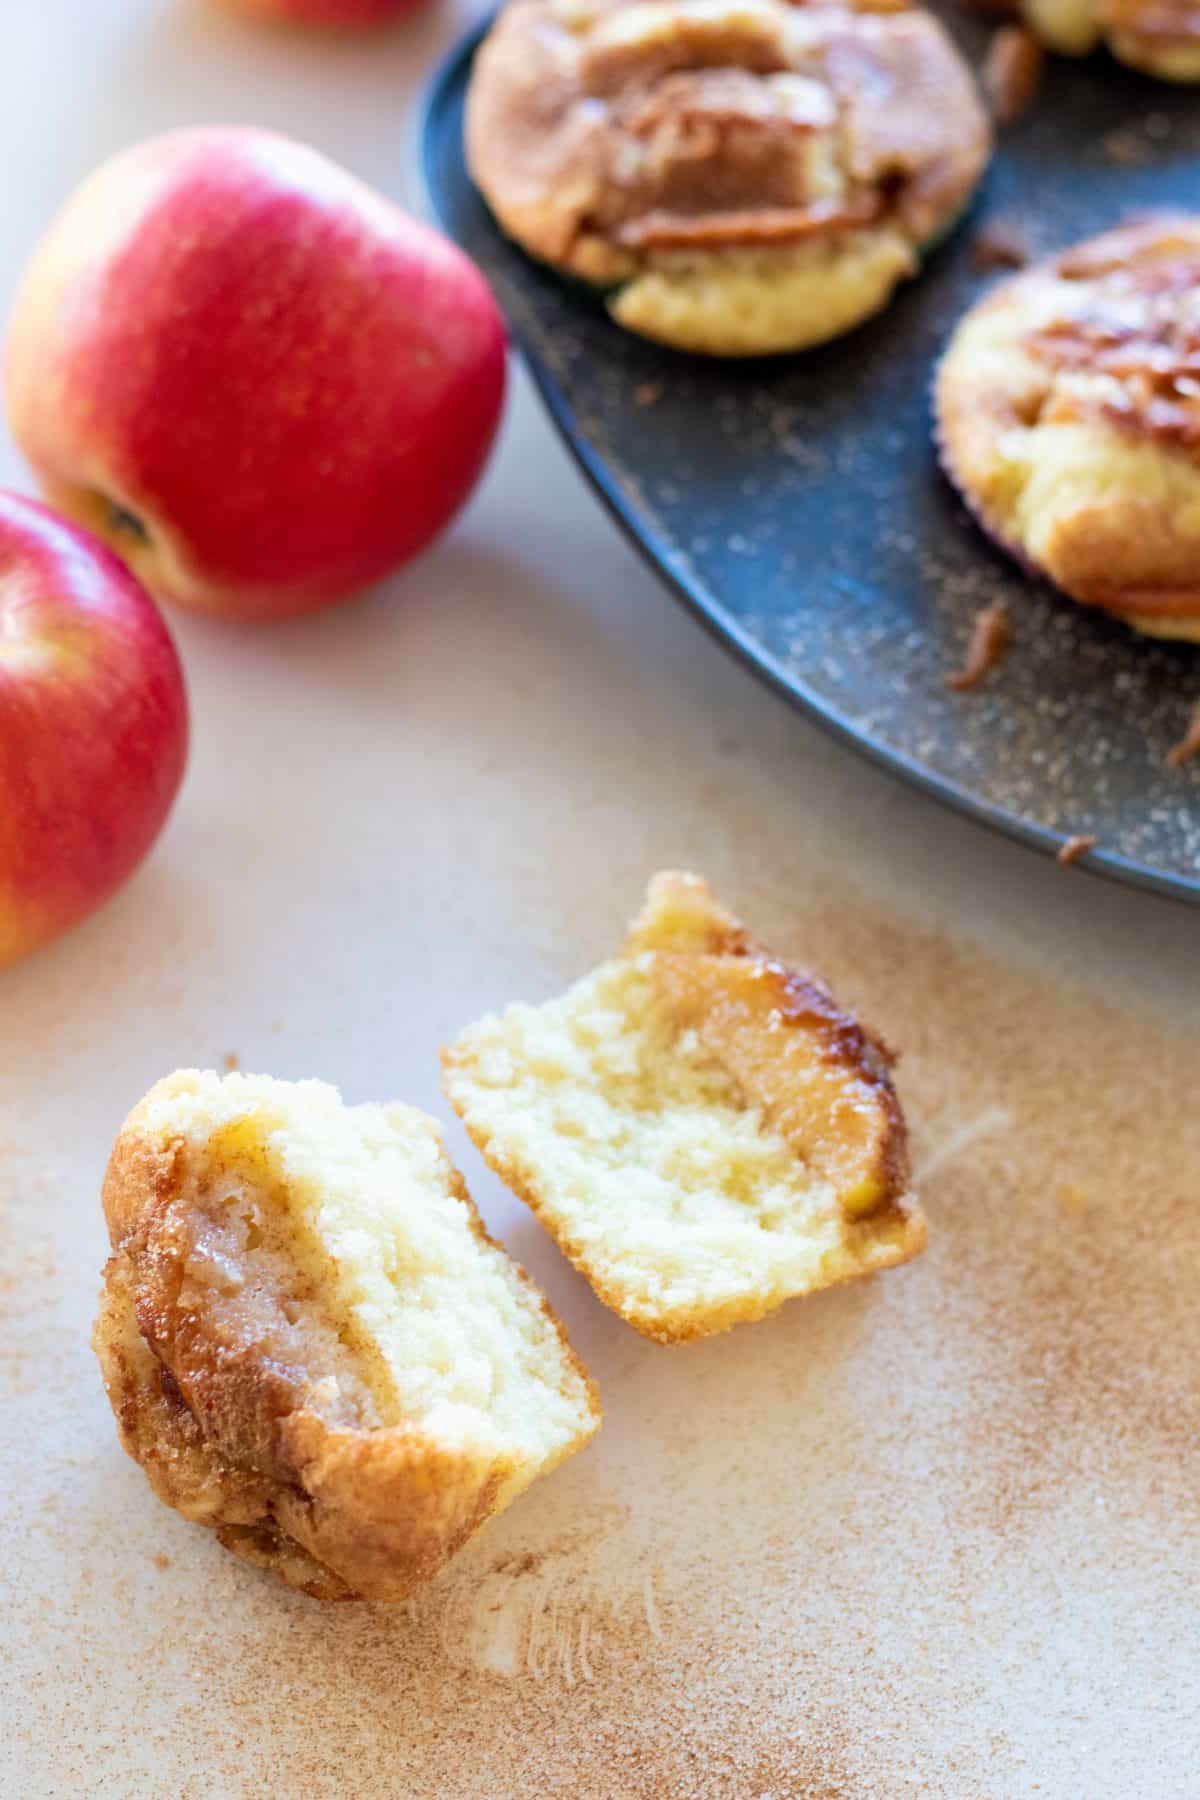 an apple muffin split in half in front of a muffin tin filled with muffins